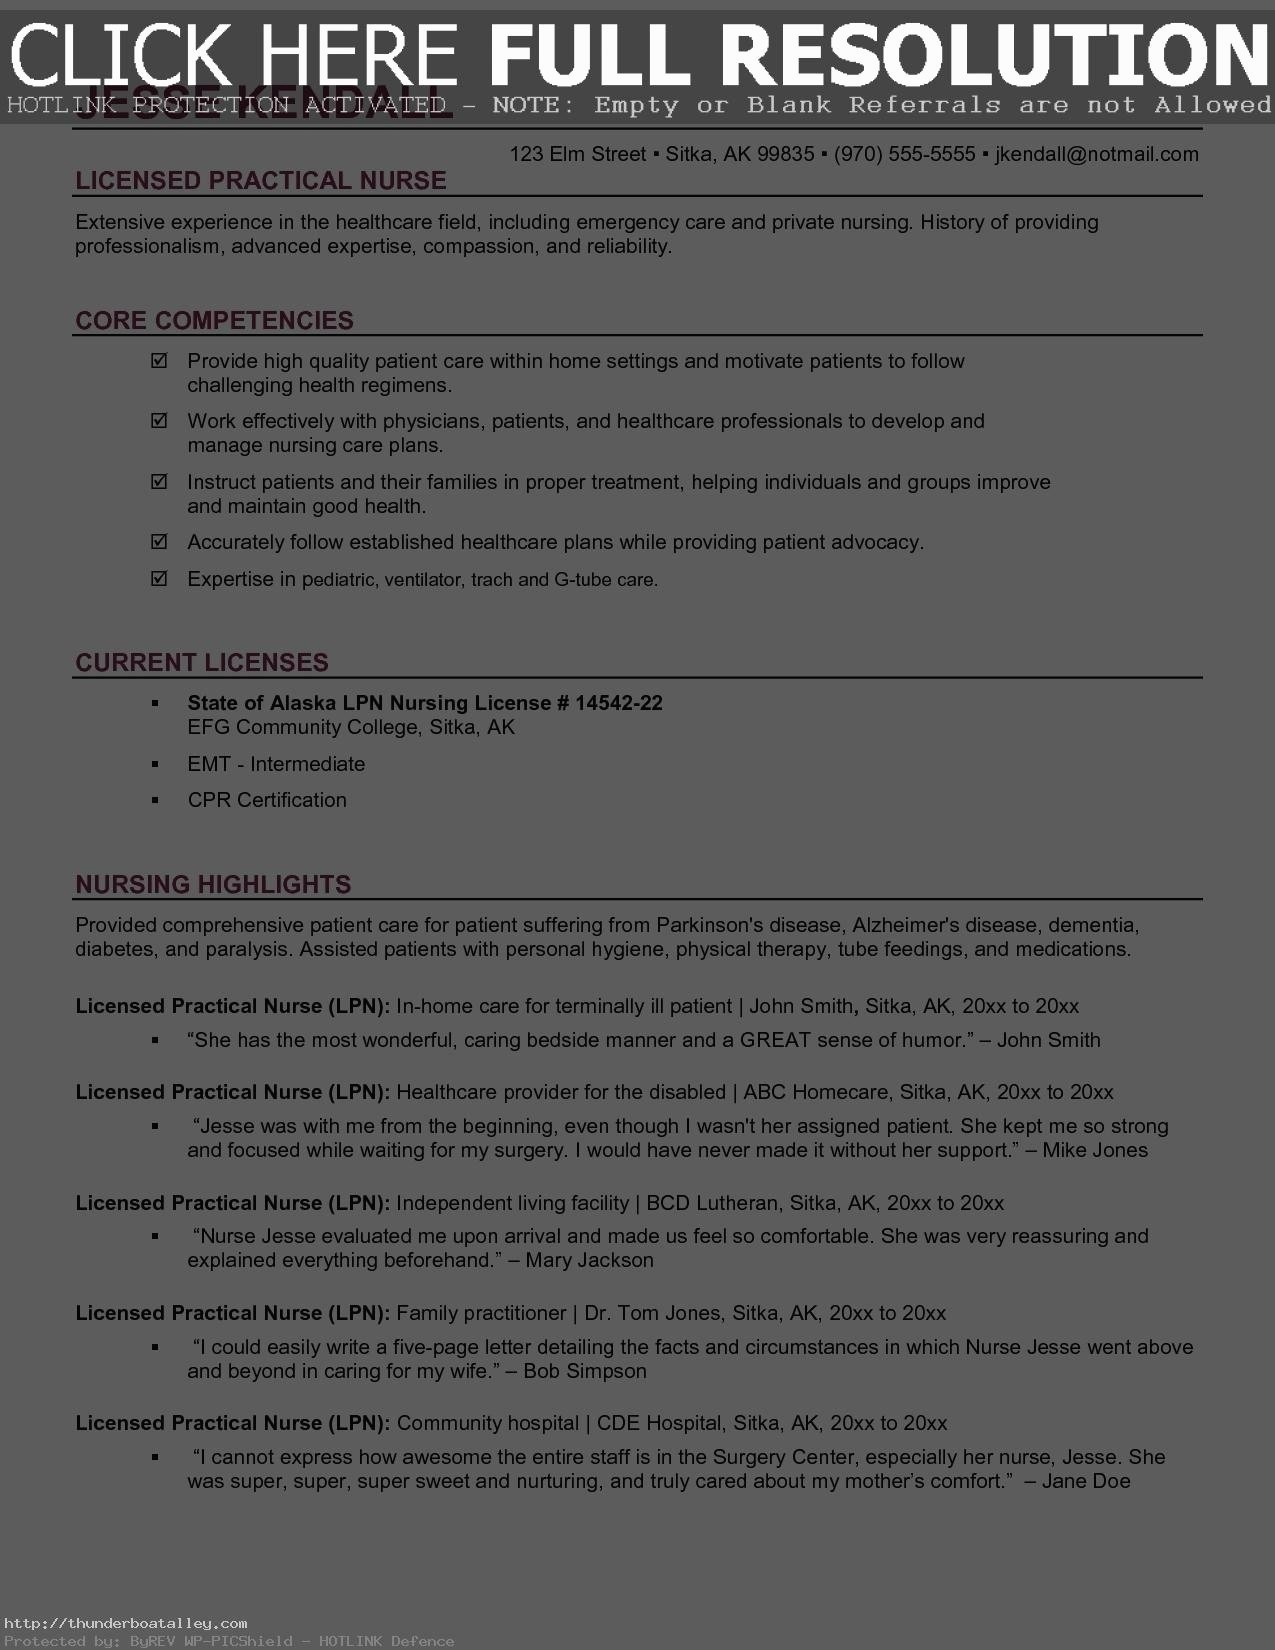 Lpn Resume Sample New Graduate - Licensed Practical Nurse Lpn Resume Sample Elegant Elegant New Nurse